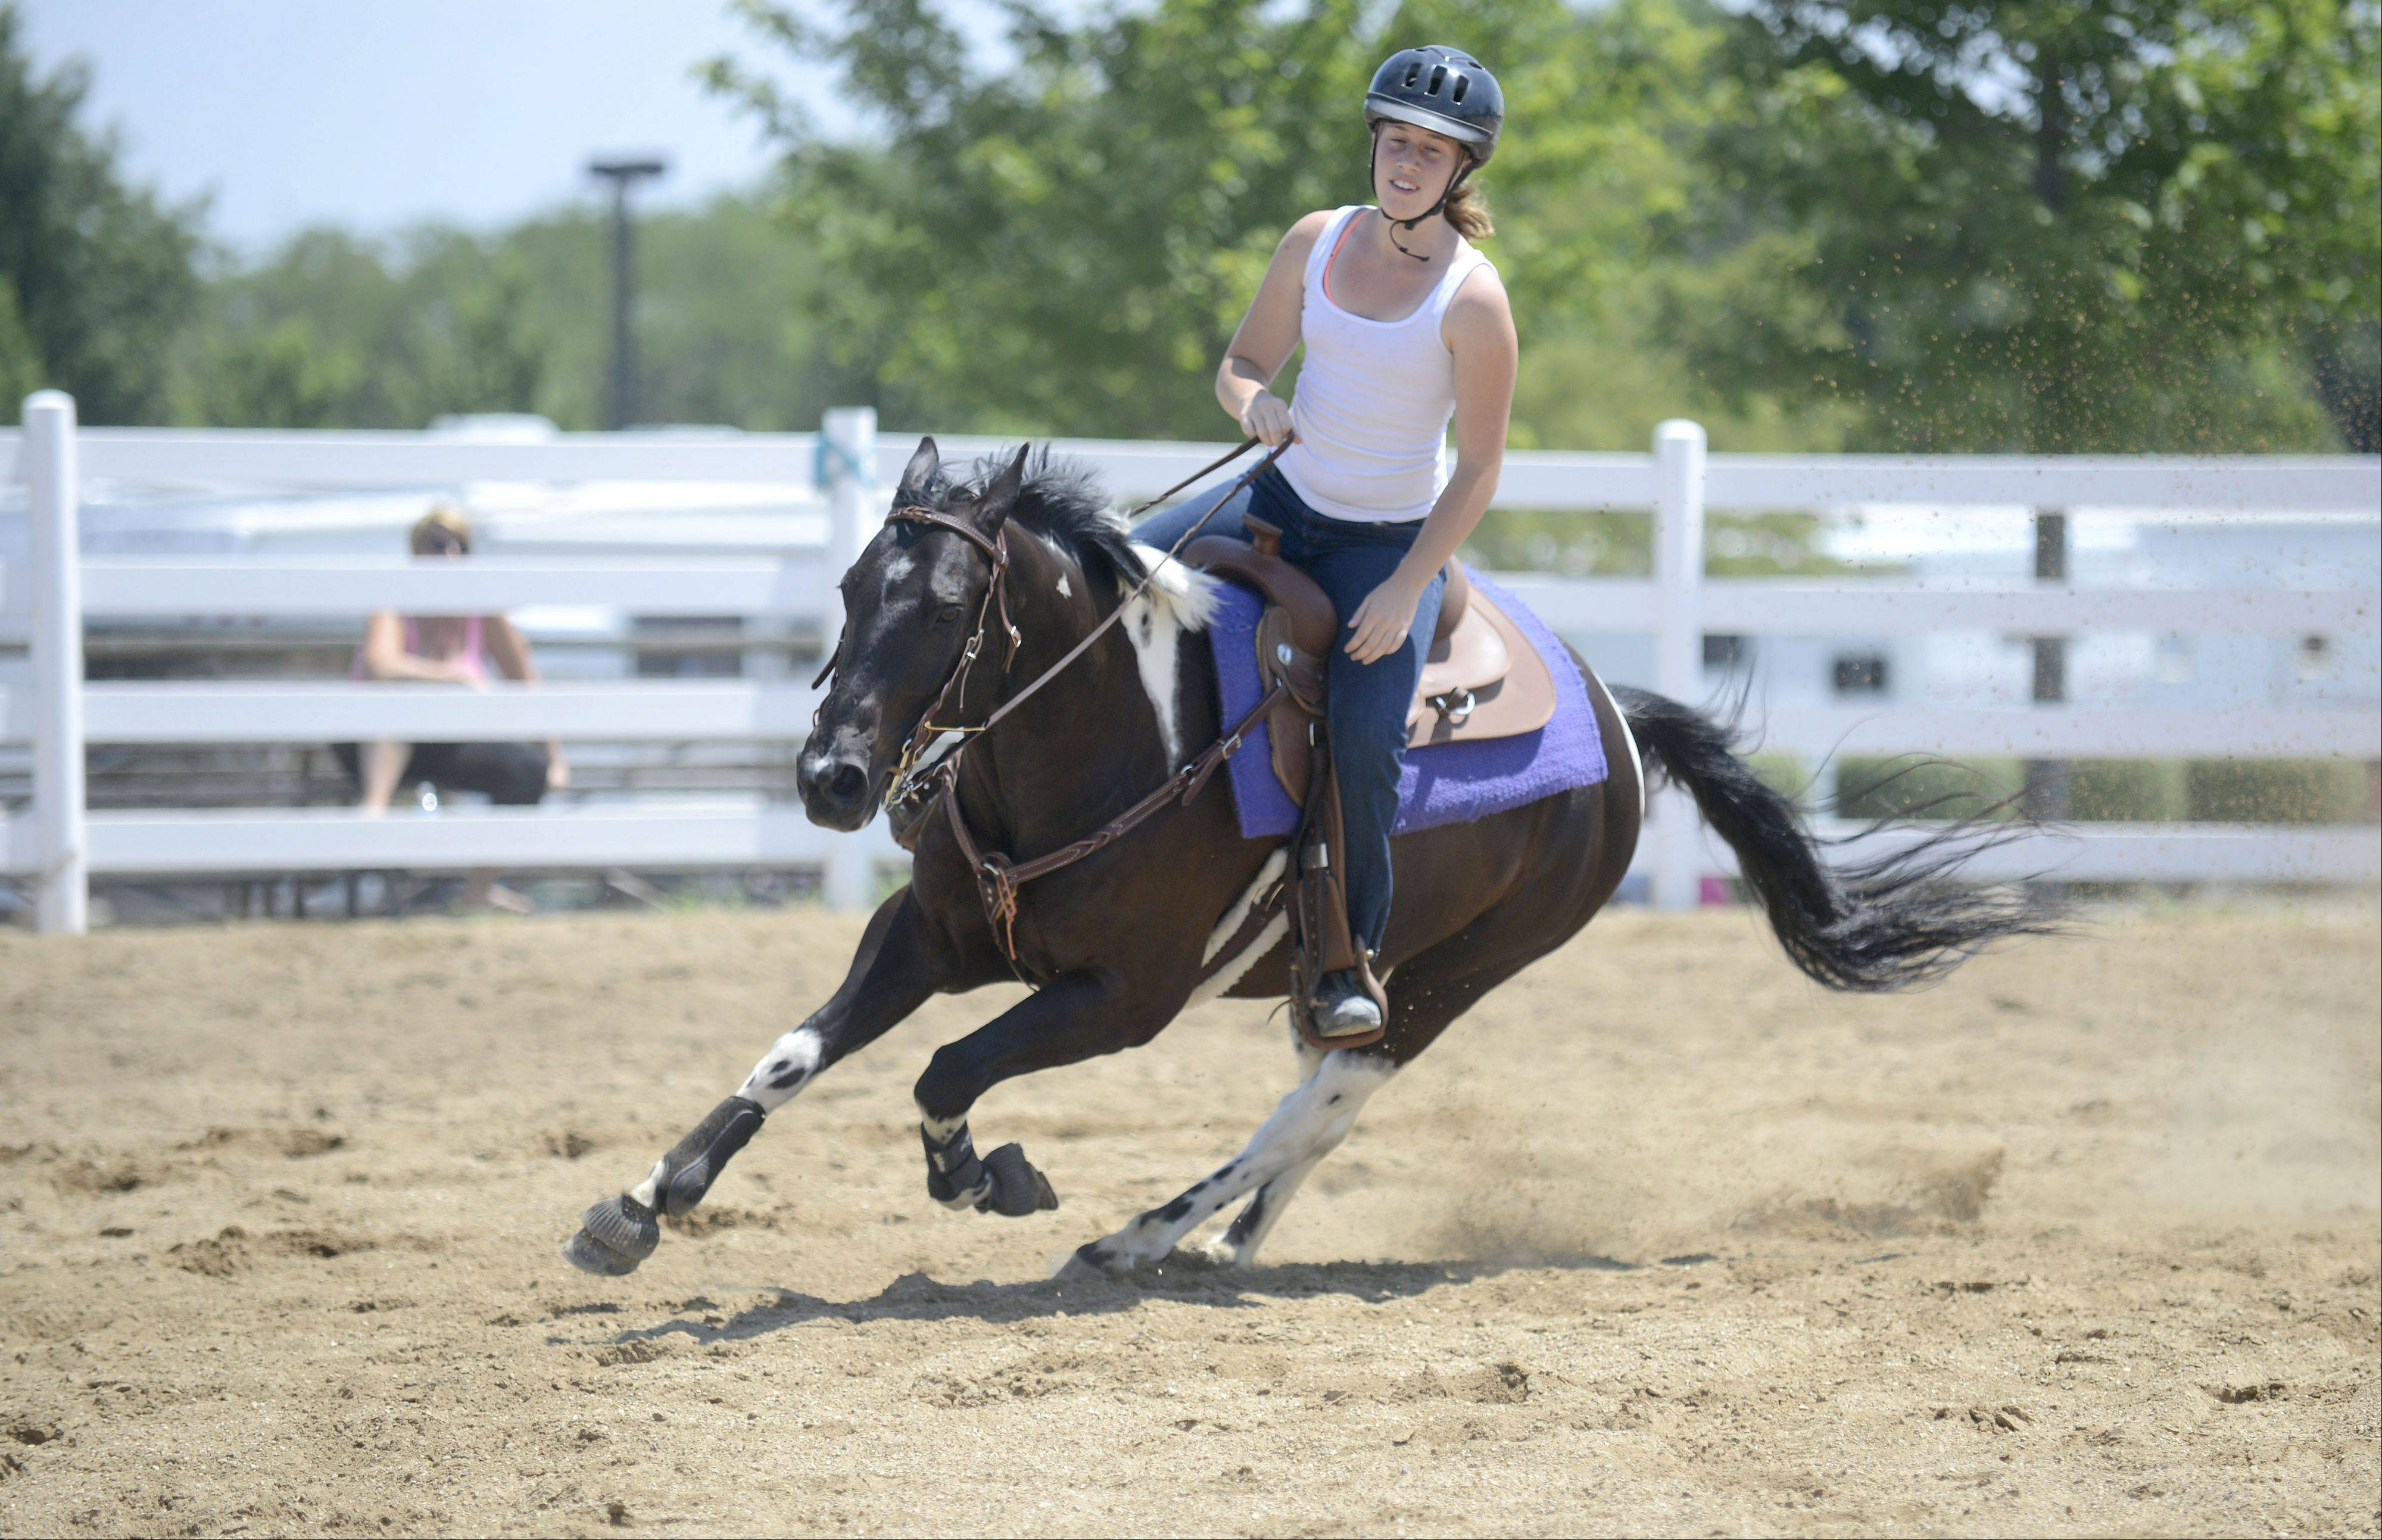 Hannah Wallace, 16, of Sugar Grove, exercises her horse, Jimmy, 9, on Saturday at the Kane County Fair in St. Charles. Wallace is a member of the Y-Not 4-H club out of Maple Park. She has been riding for three years and competed the last two years at the fair.